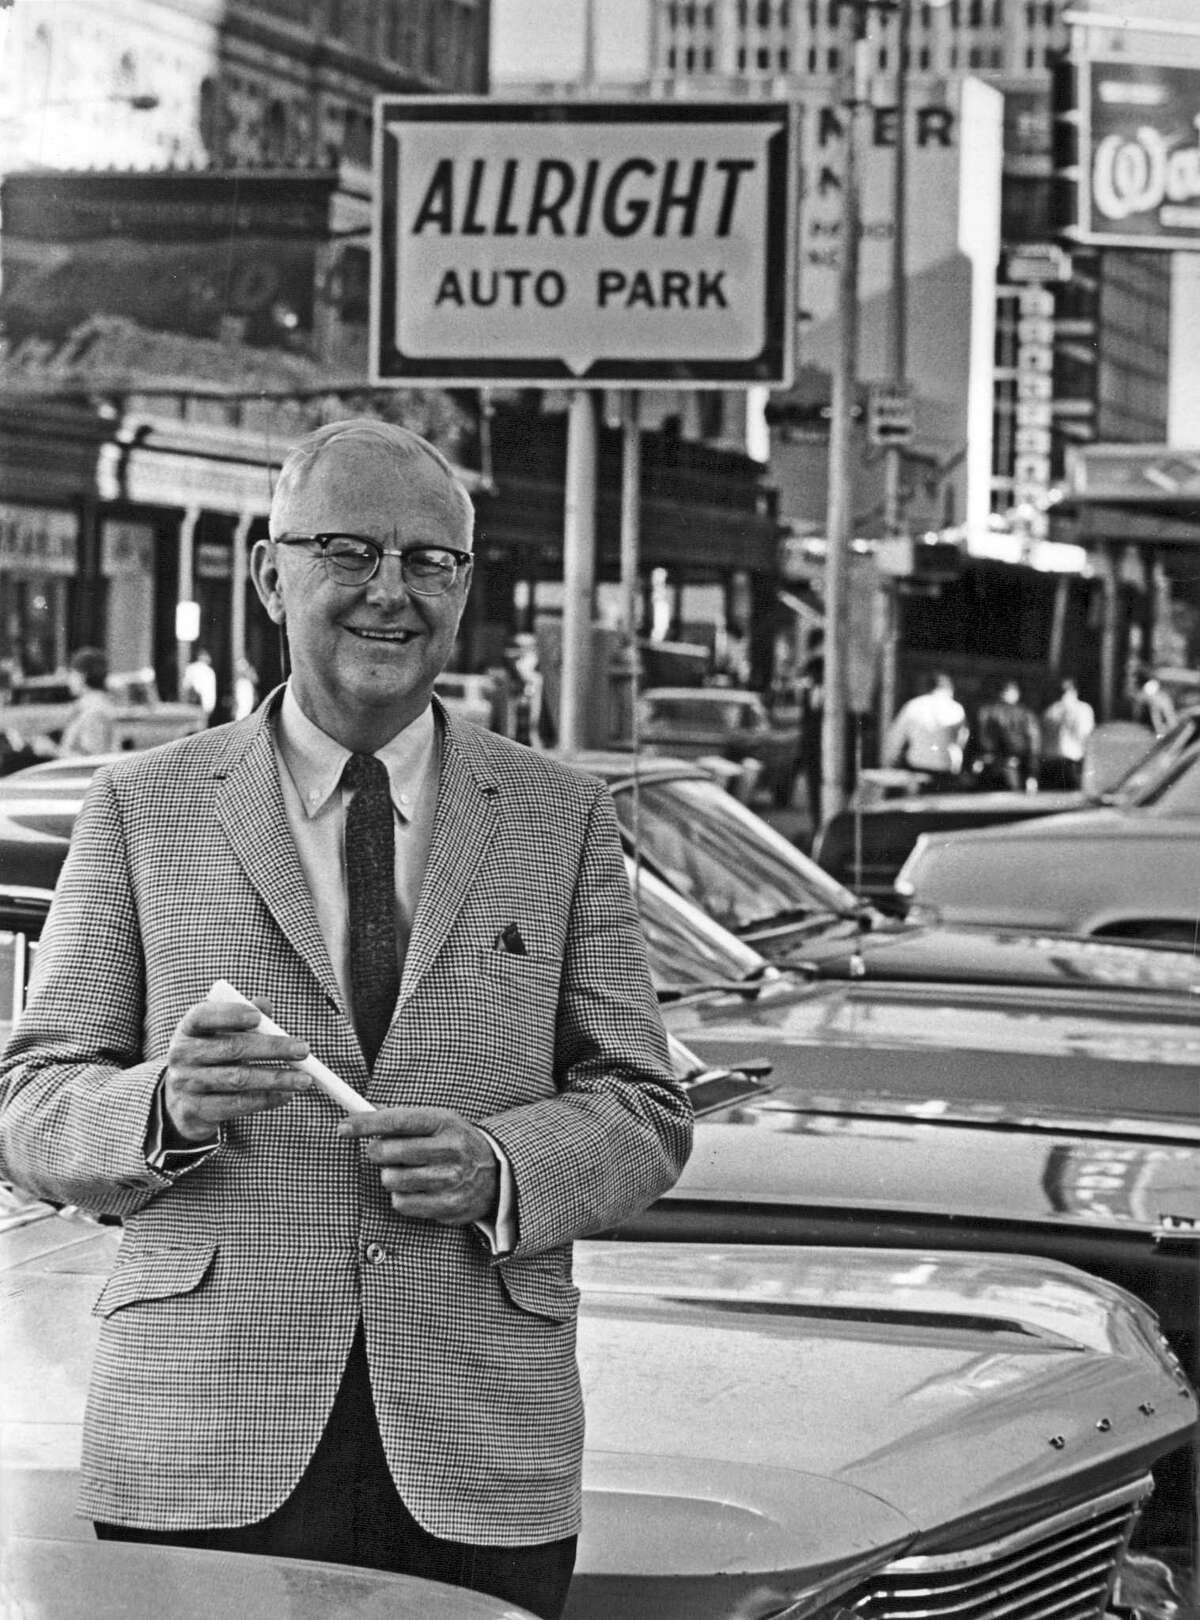 The father of the Houston parking business, Durell M. Carothers, graduated from Rice University in 1930 and began managing downtown Houston lots owned by an uncle. He took over the company upon the death of his uncle.